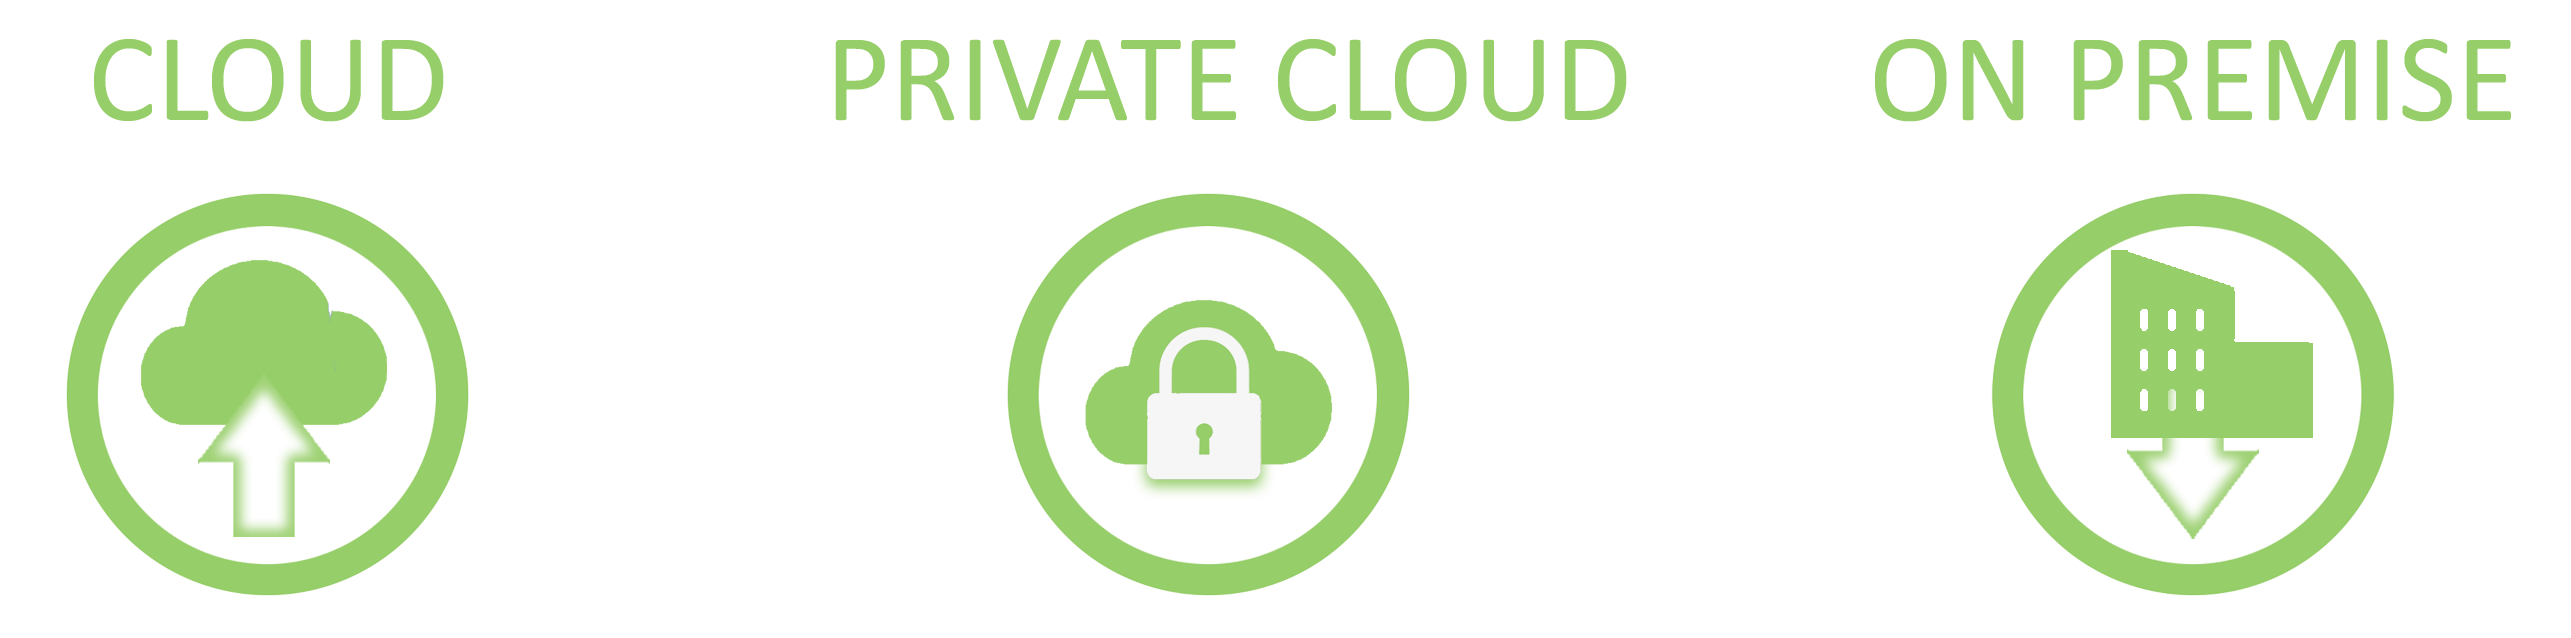 Cloud, Private Cloud and On Premise